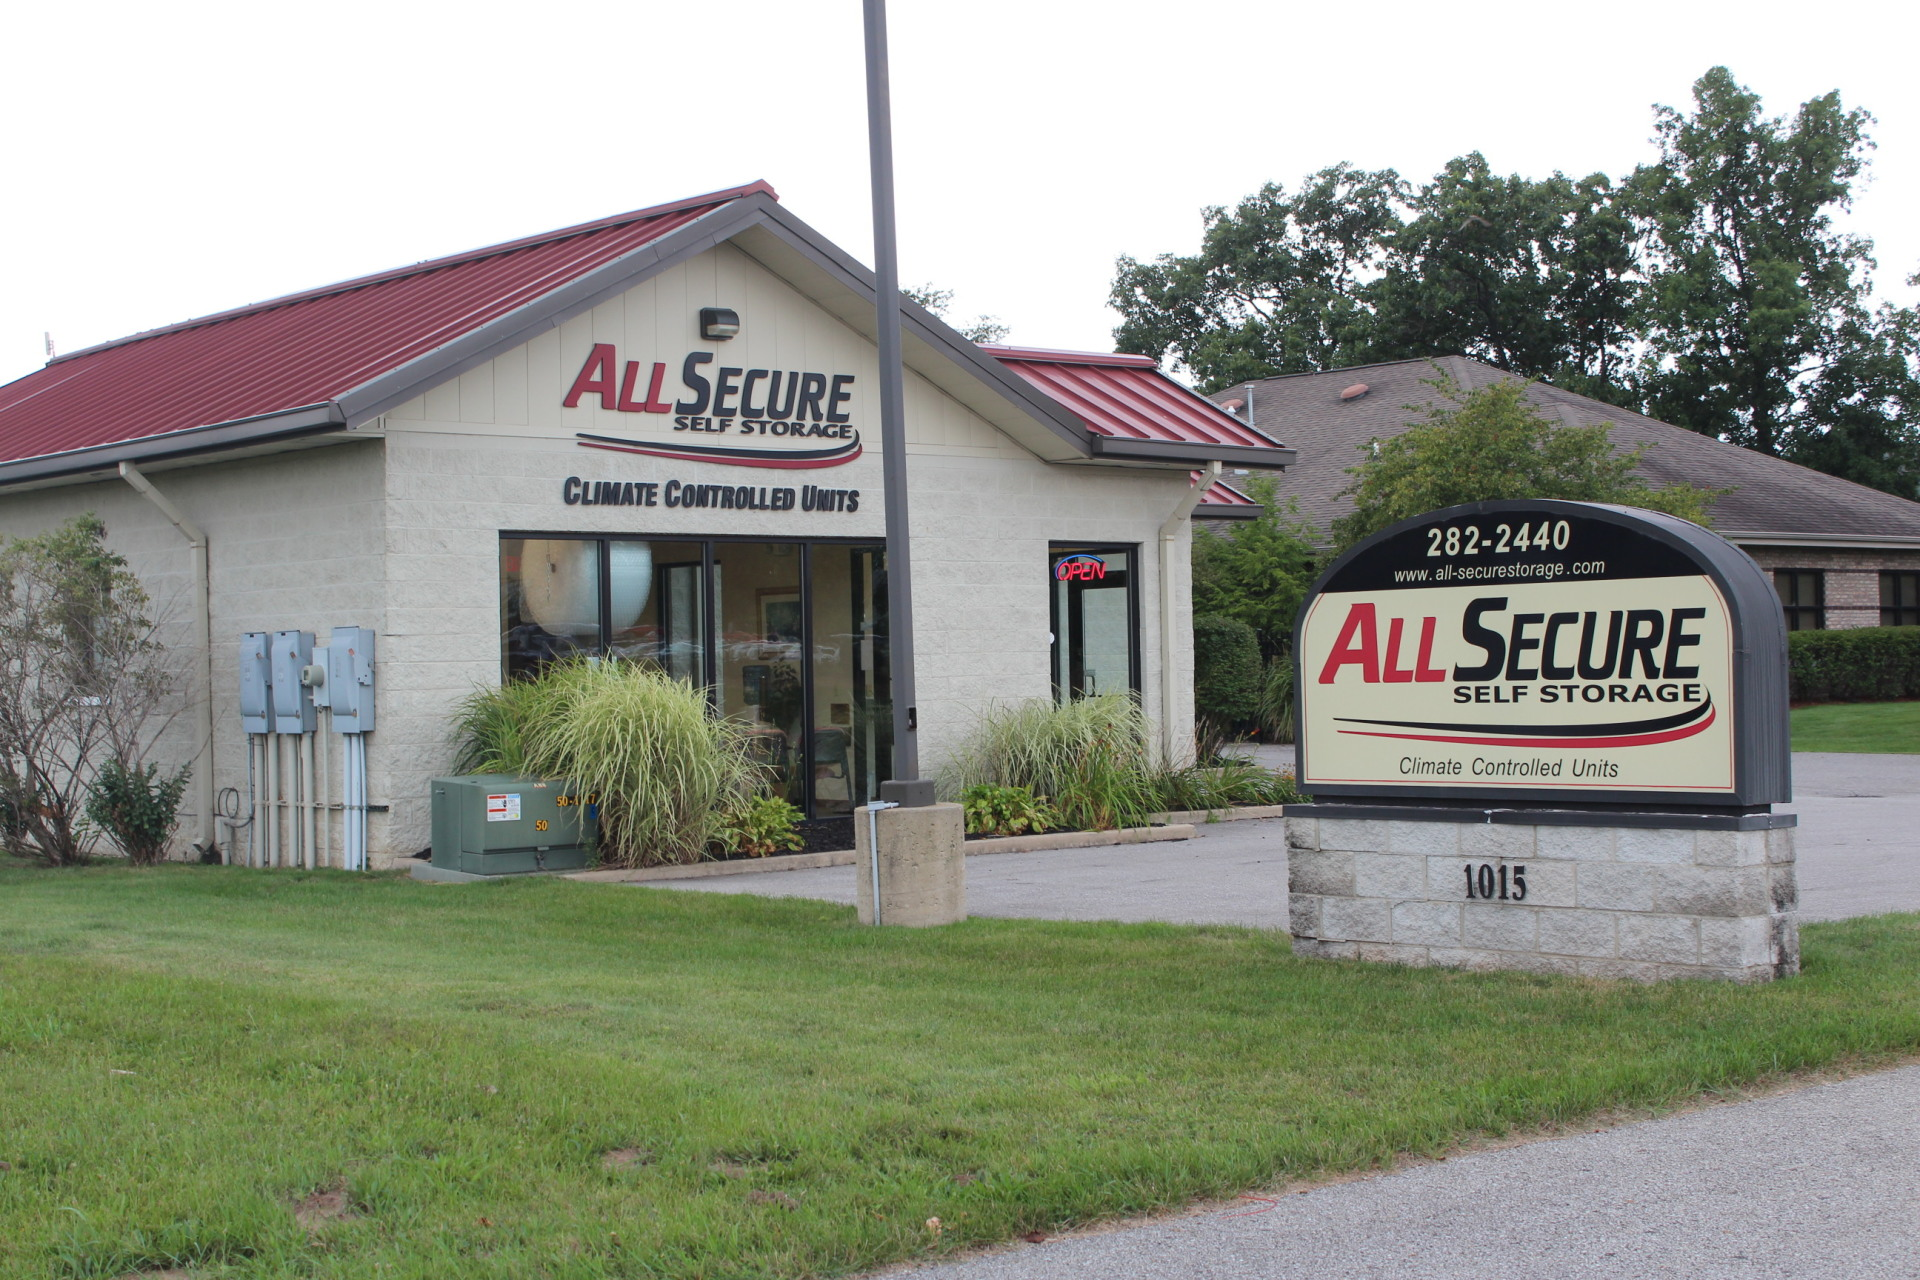 All Secure Self Storage - Granger, IN